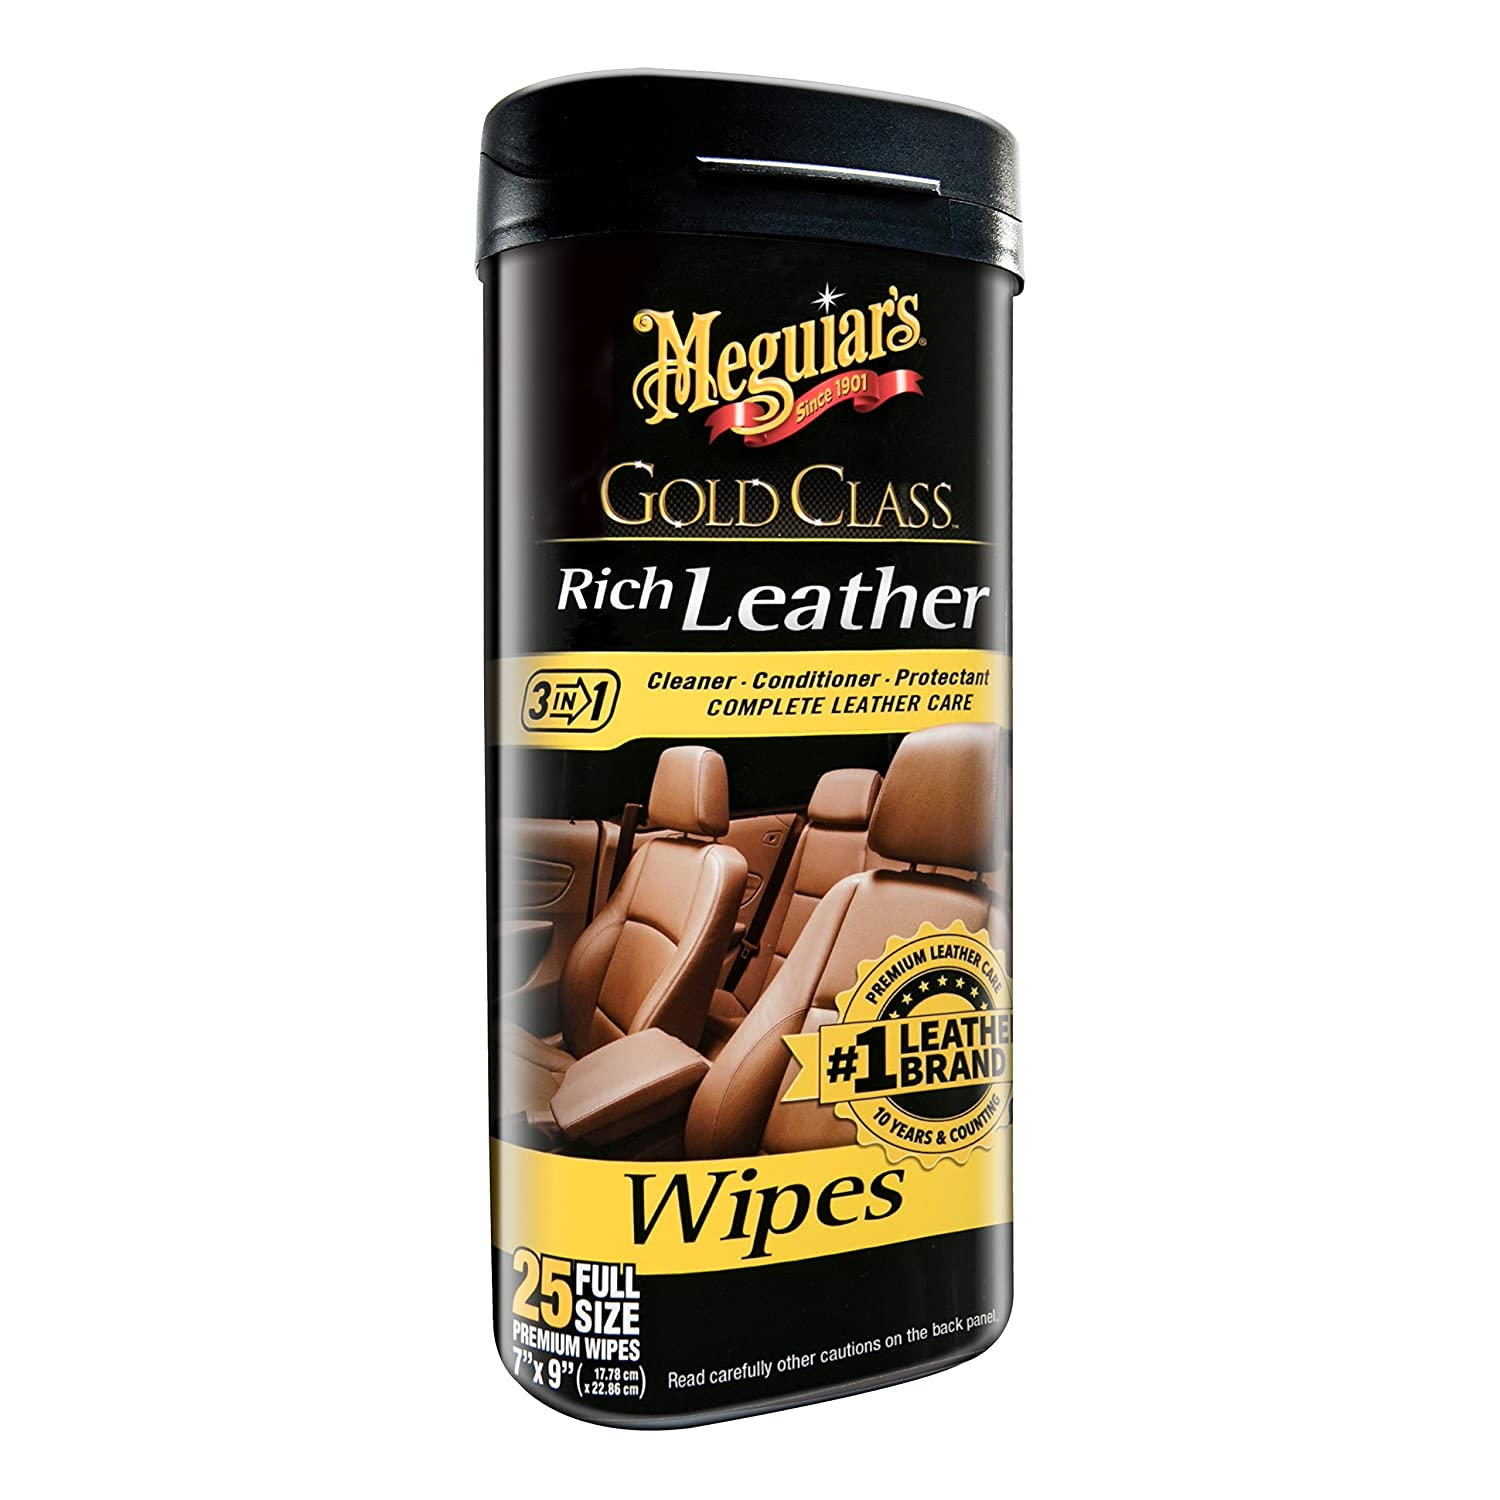 Meguiar's G10900 Gold Class Rich Leather Cleaner & Conditioner Wipes, 2 Pack Meguiar' s